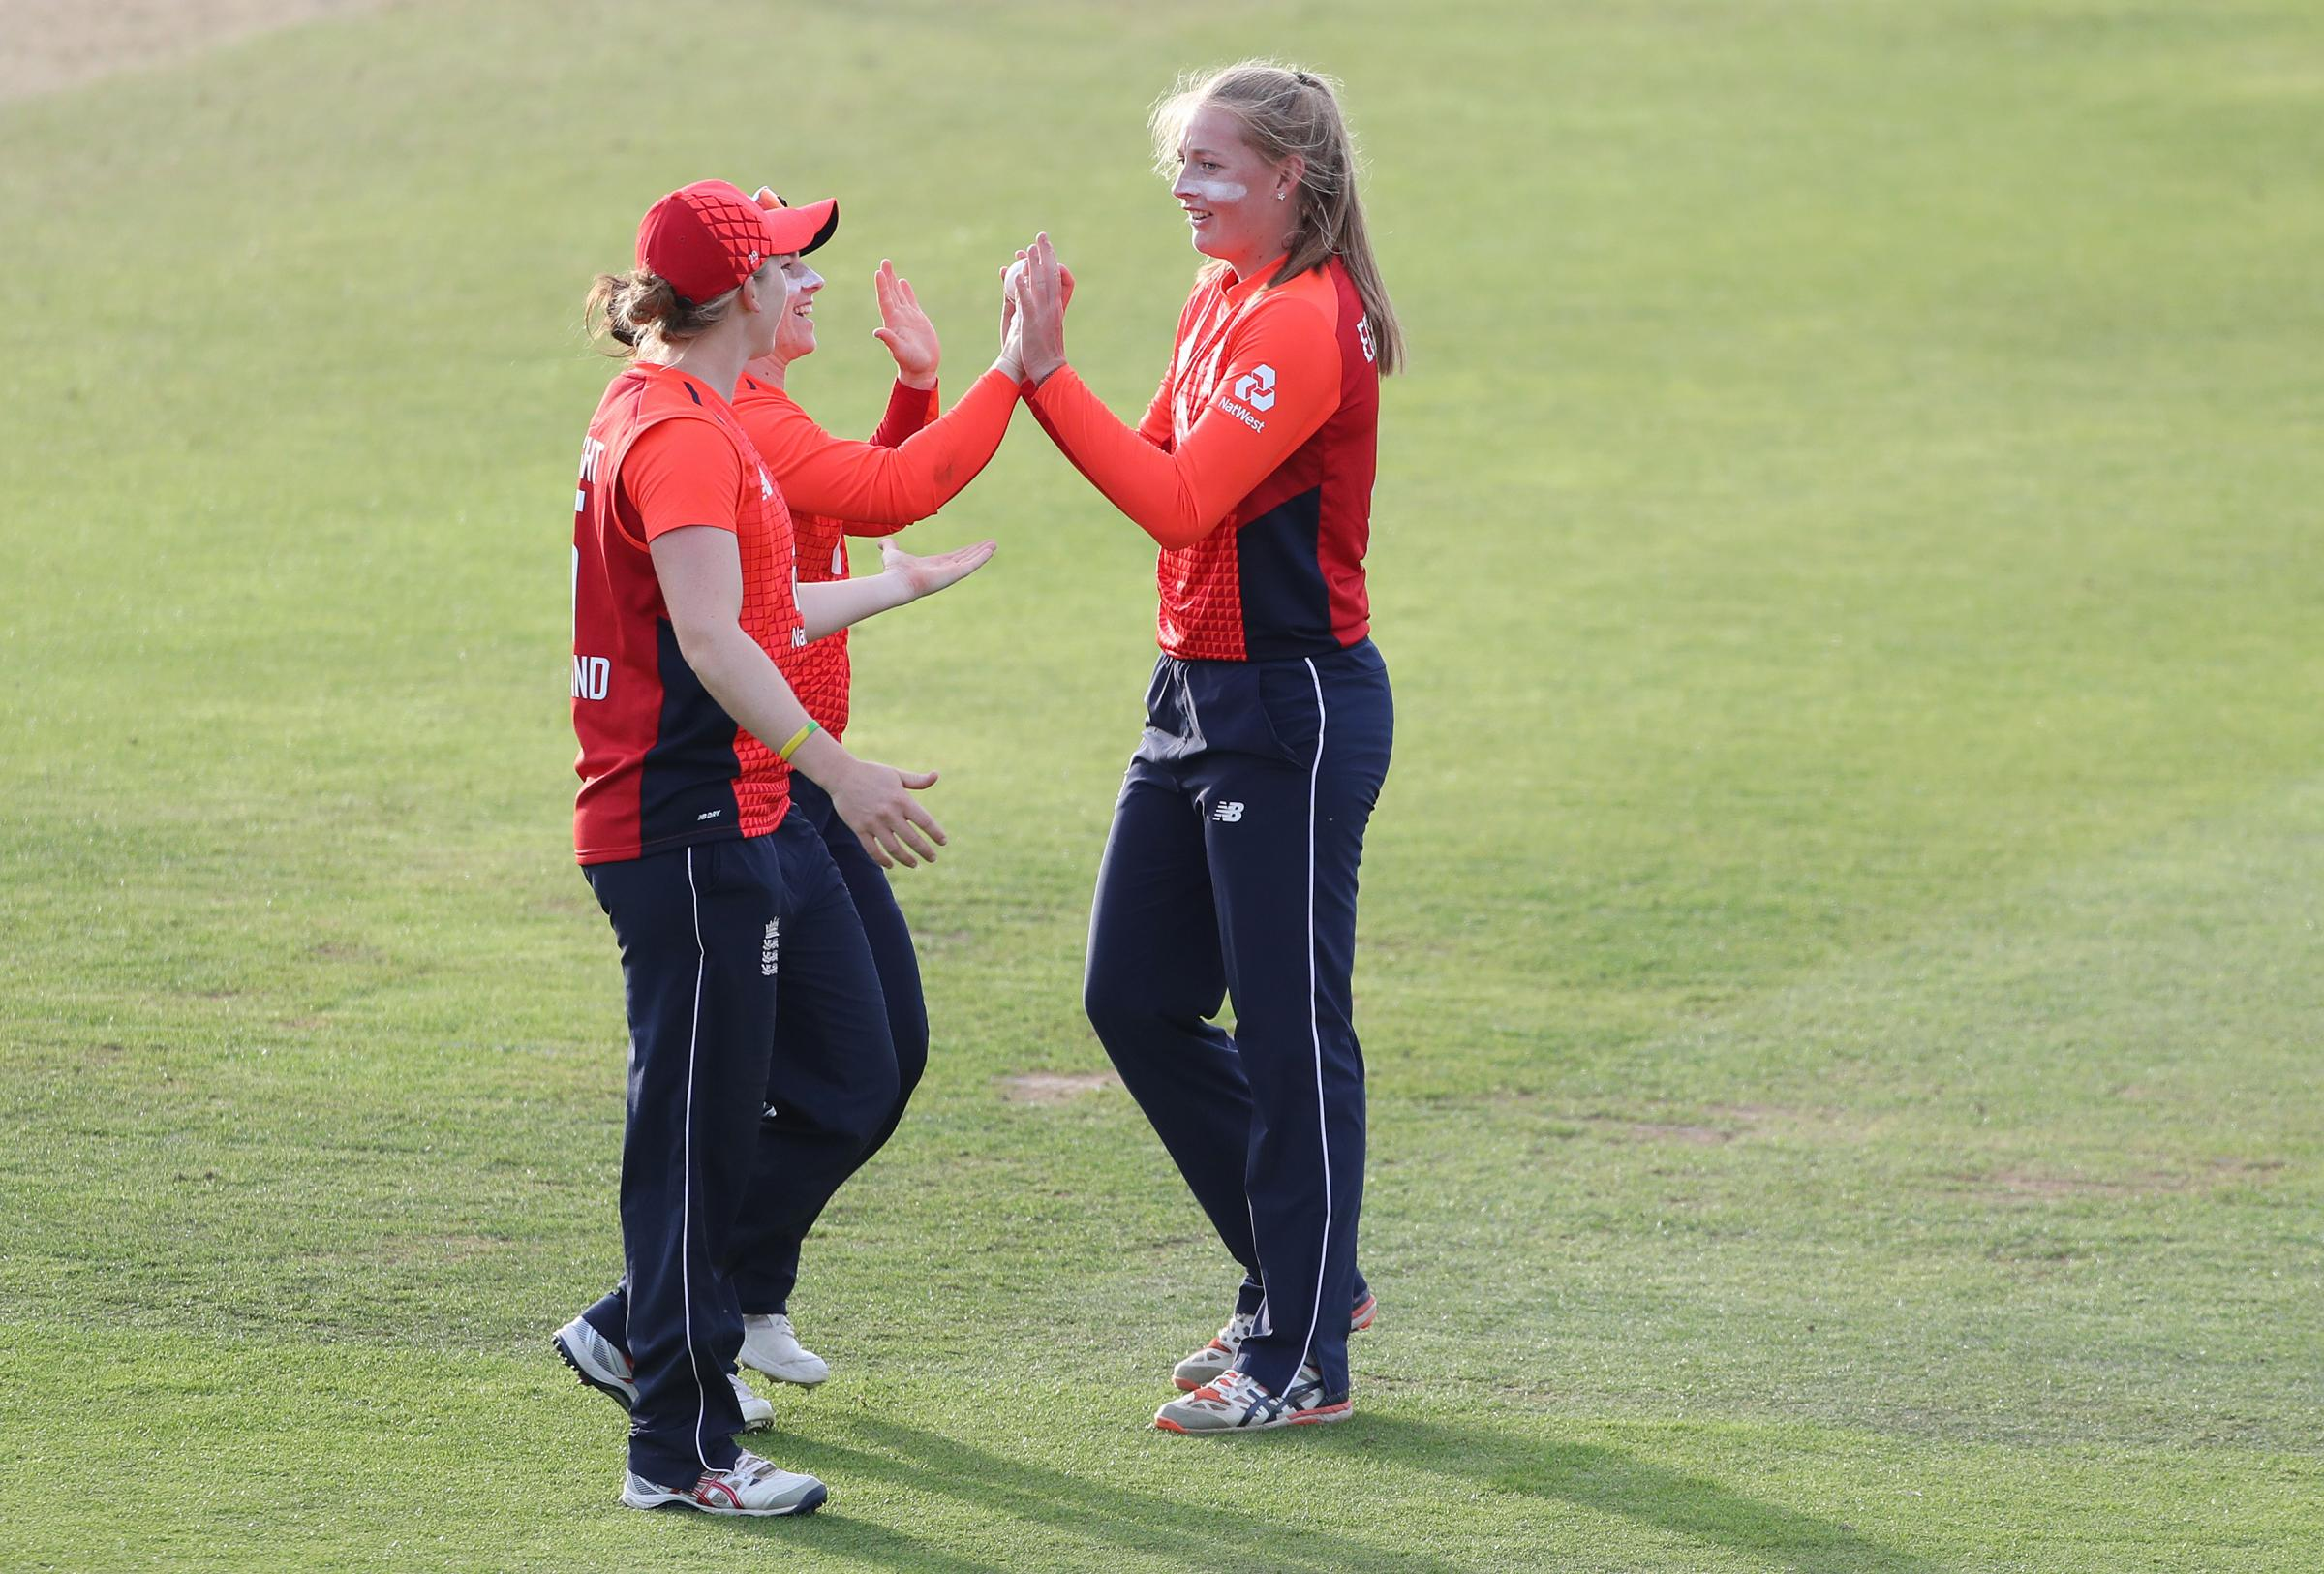 England's Sophie Ecclestone celebrates taking the wicket of New Zealand's Anna Peterson during the T20 Tri Series match at the County Ground..